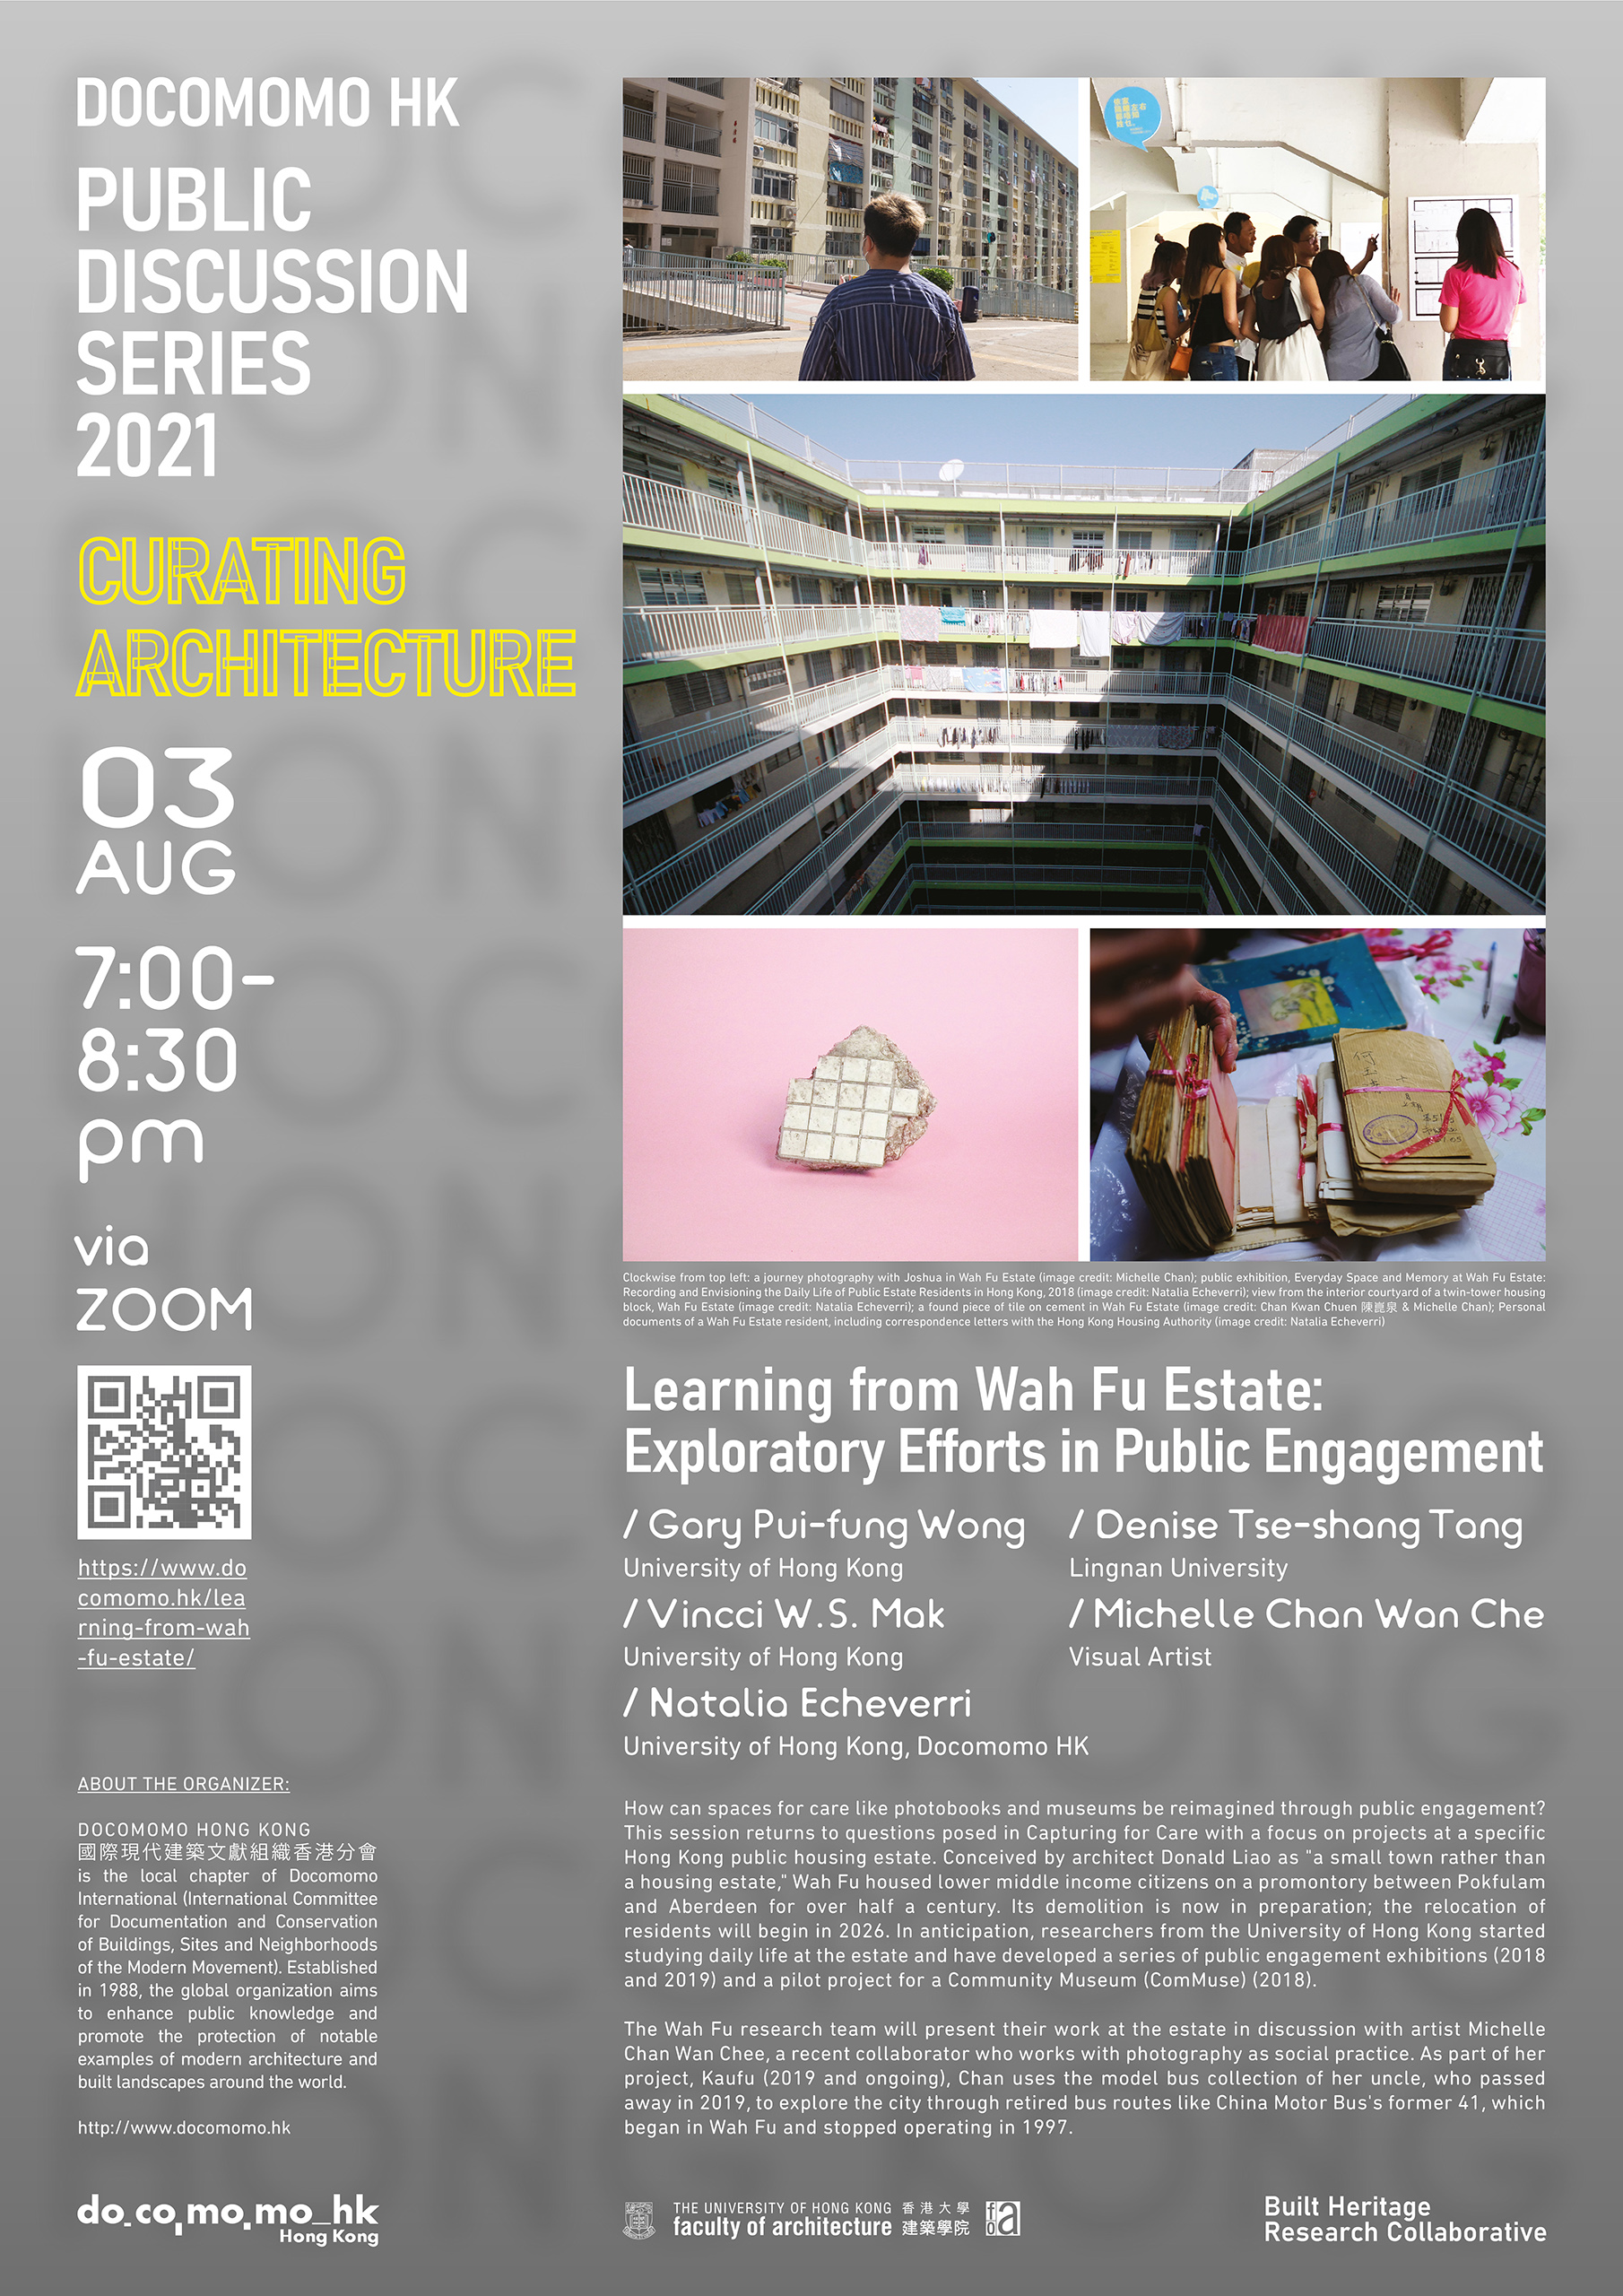 Learning from Wah Fu Estate (Docomomo HK 2021 Public Discussion Series)